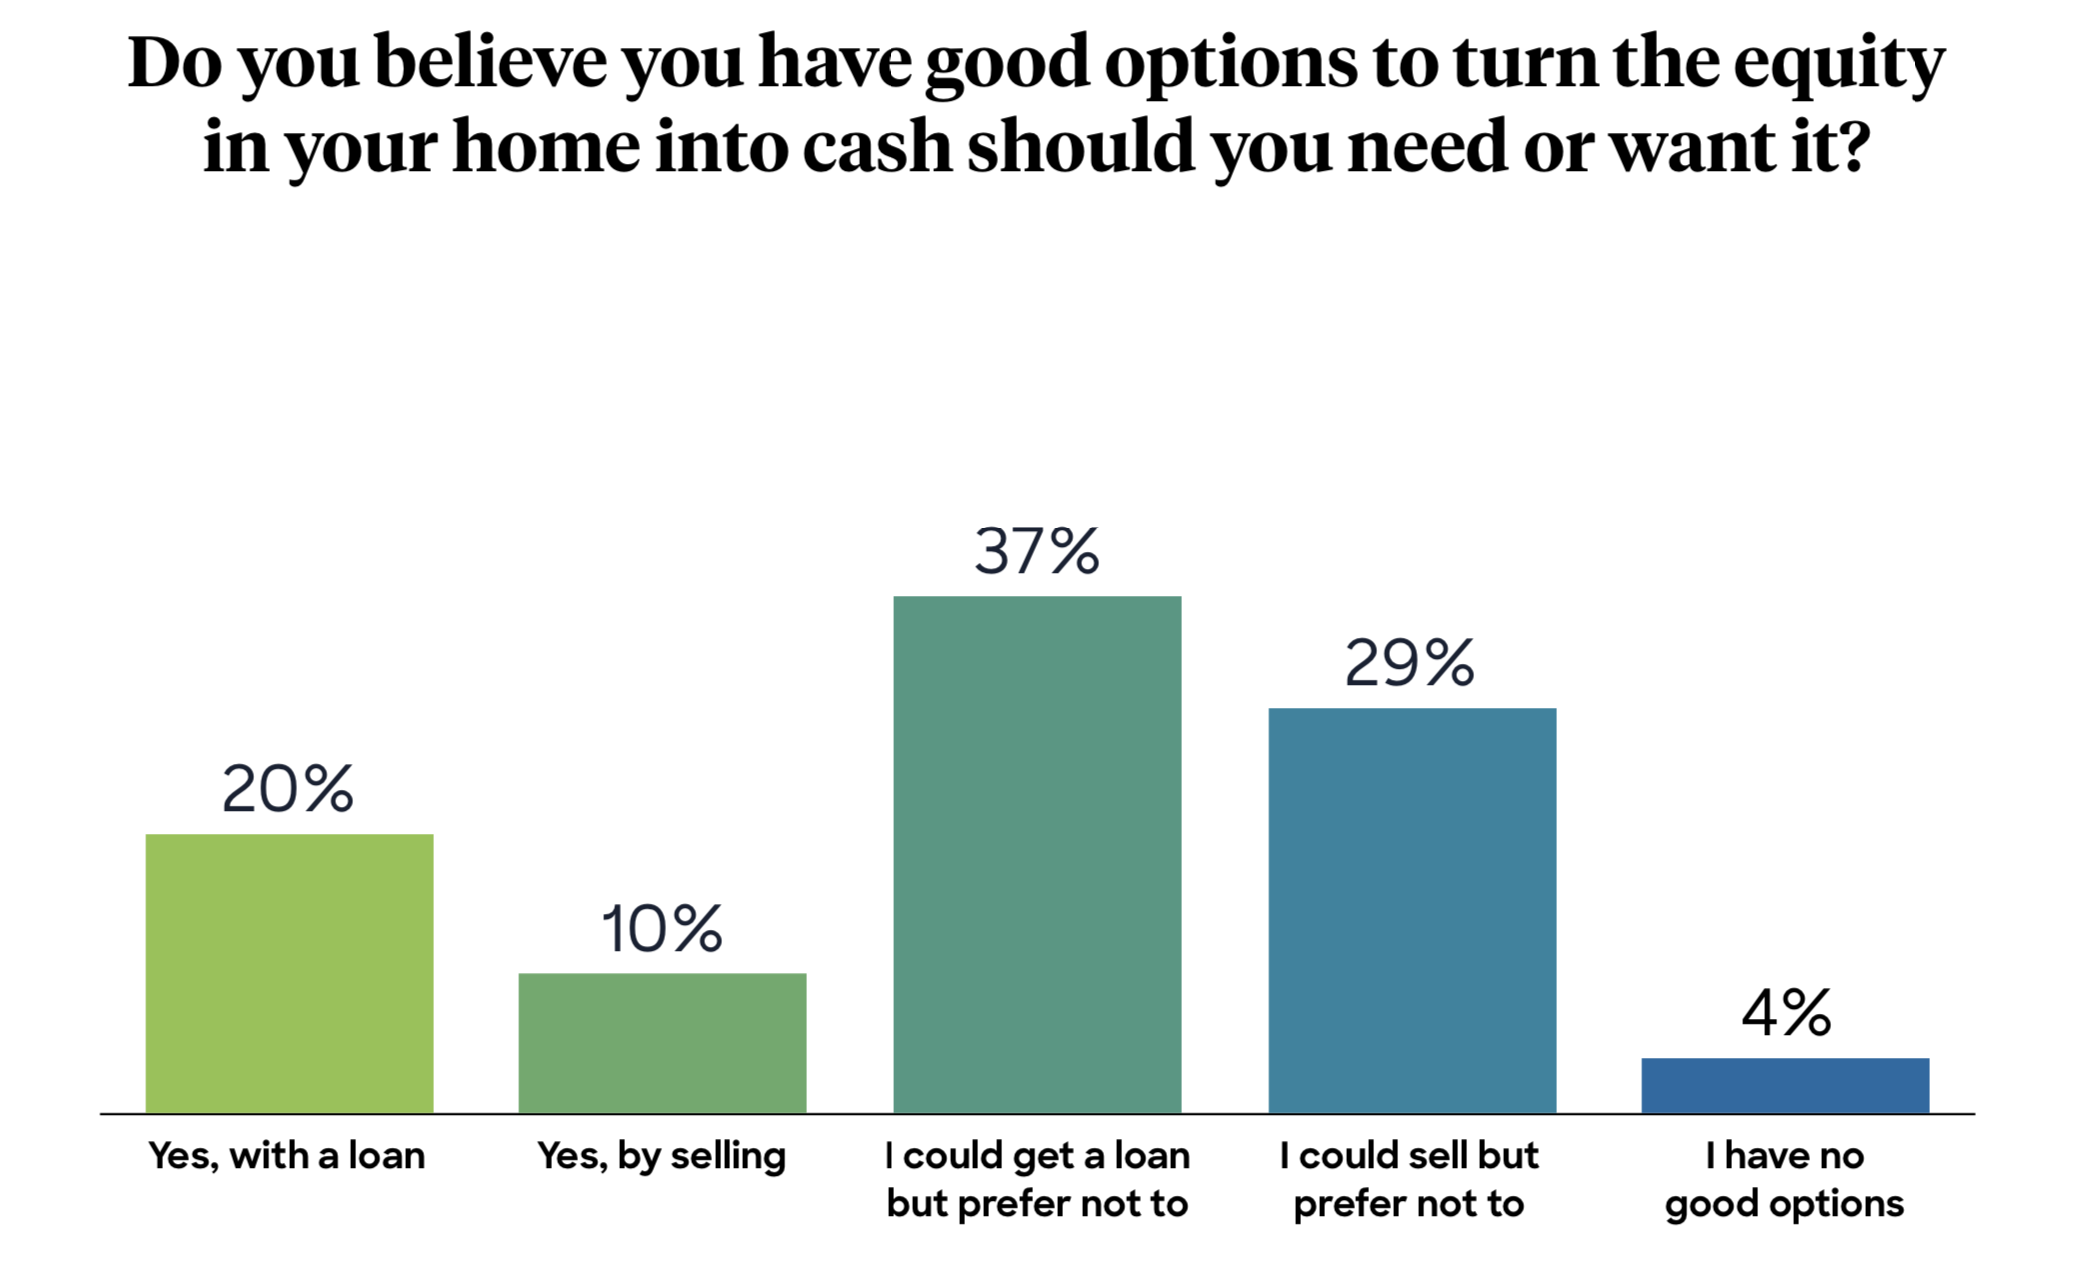 Denver homeowners on loans, selling, and home equity options